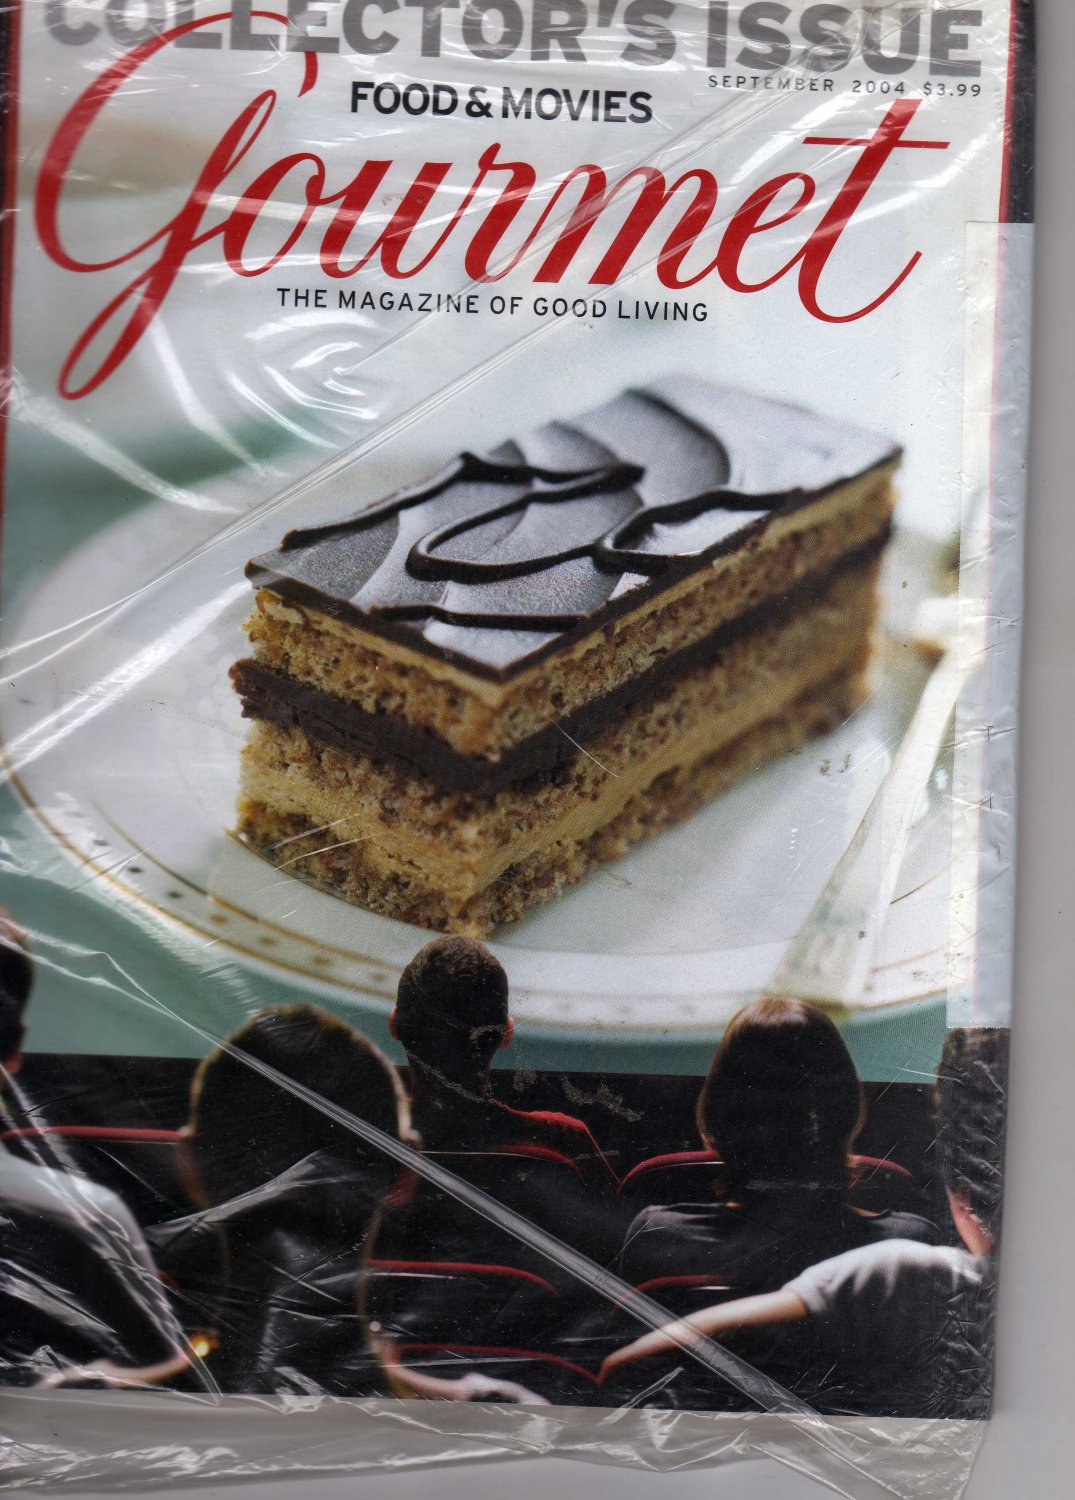 Gourmet - September 2004 Collector's Issue